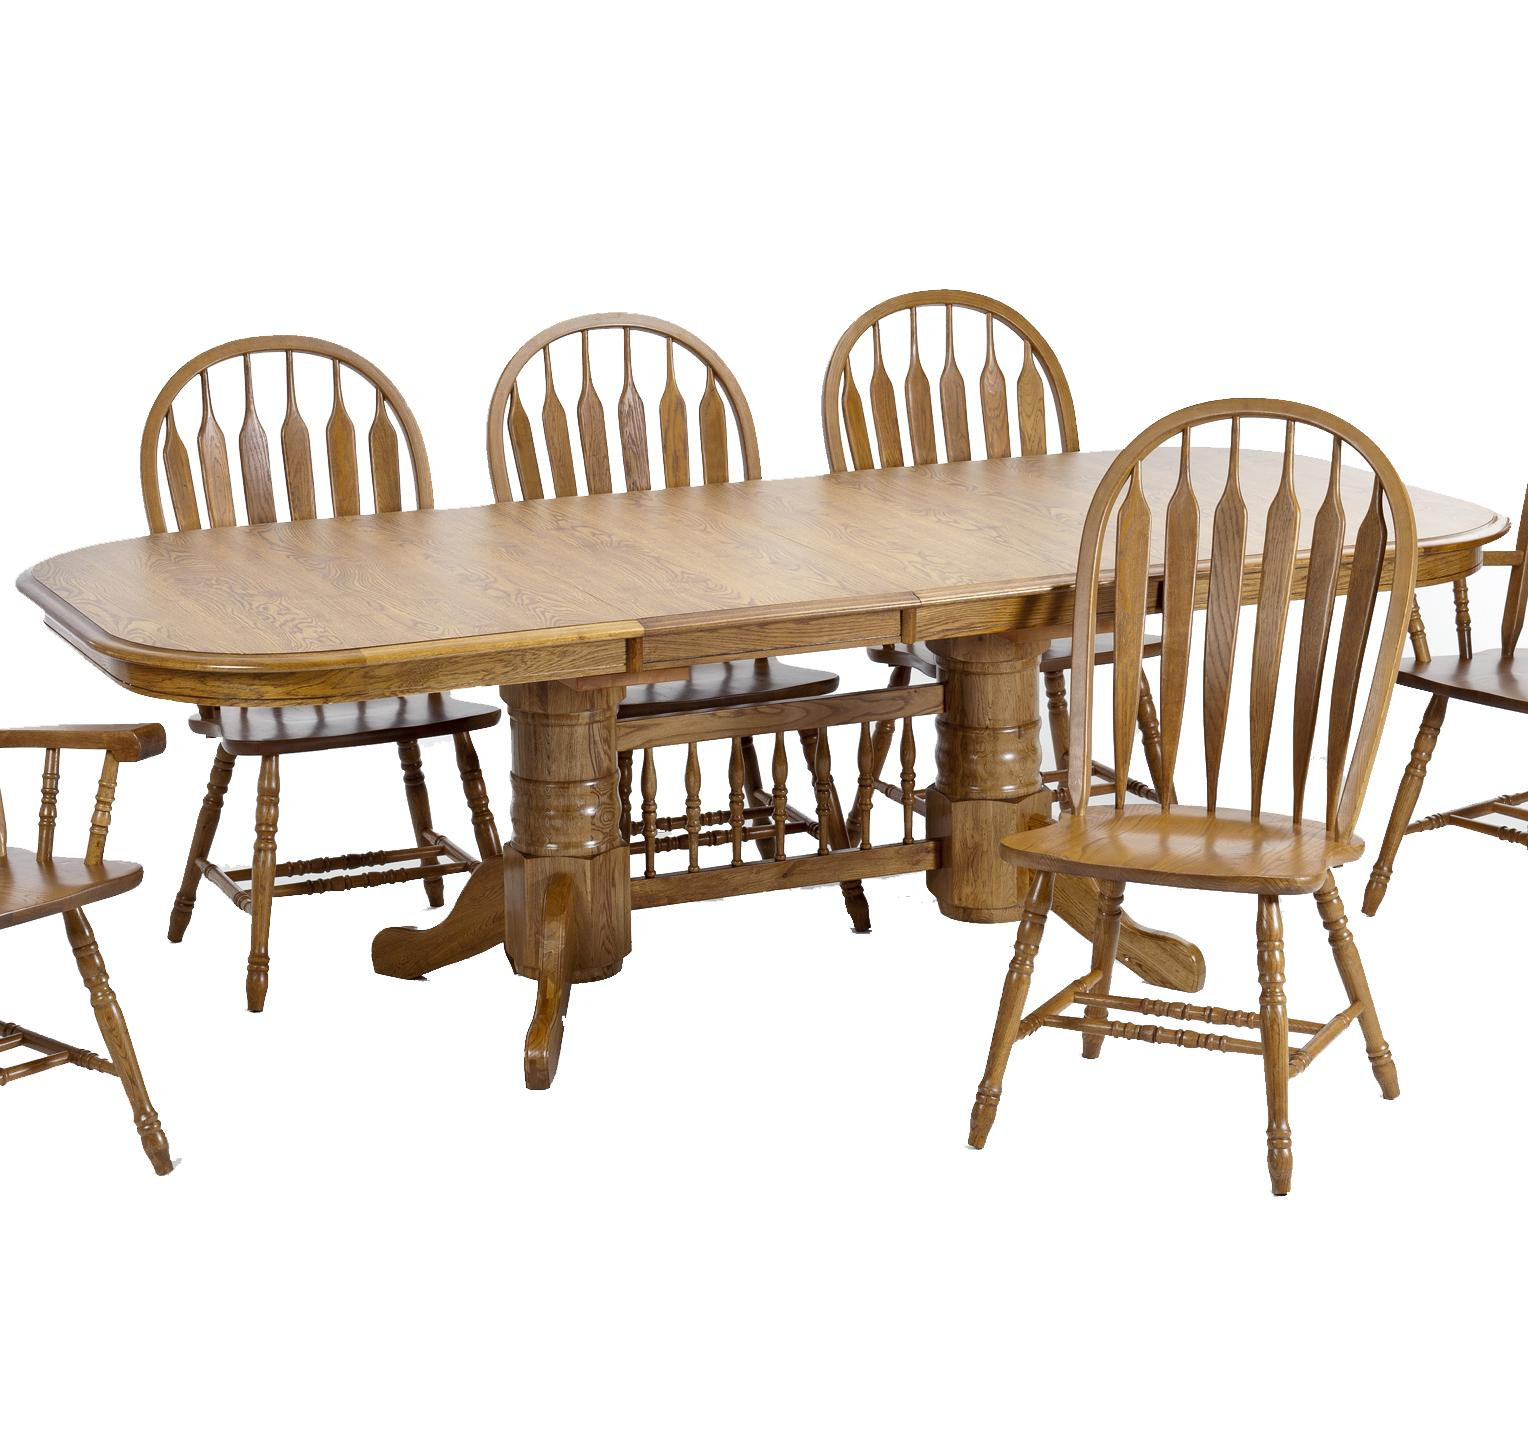 Classic Oak Trestle Table by Intercon at Dinette Depot